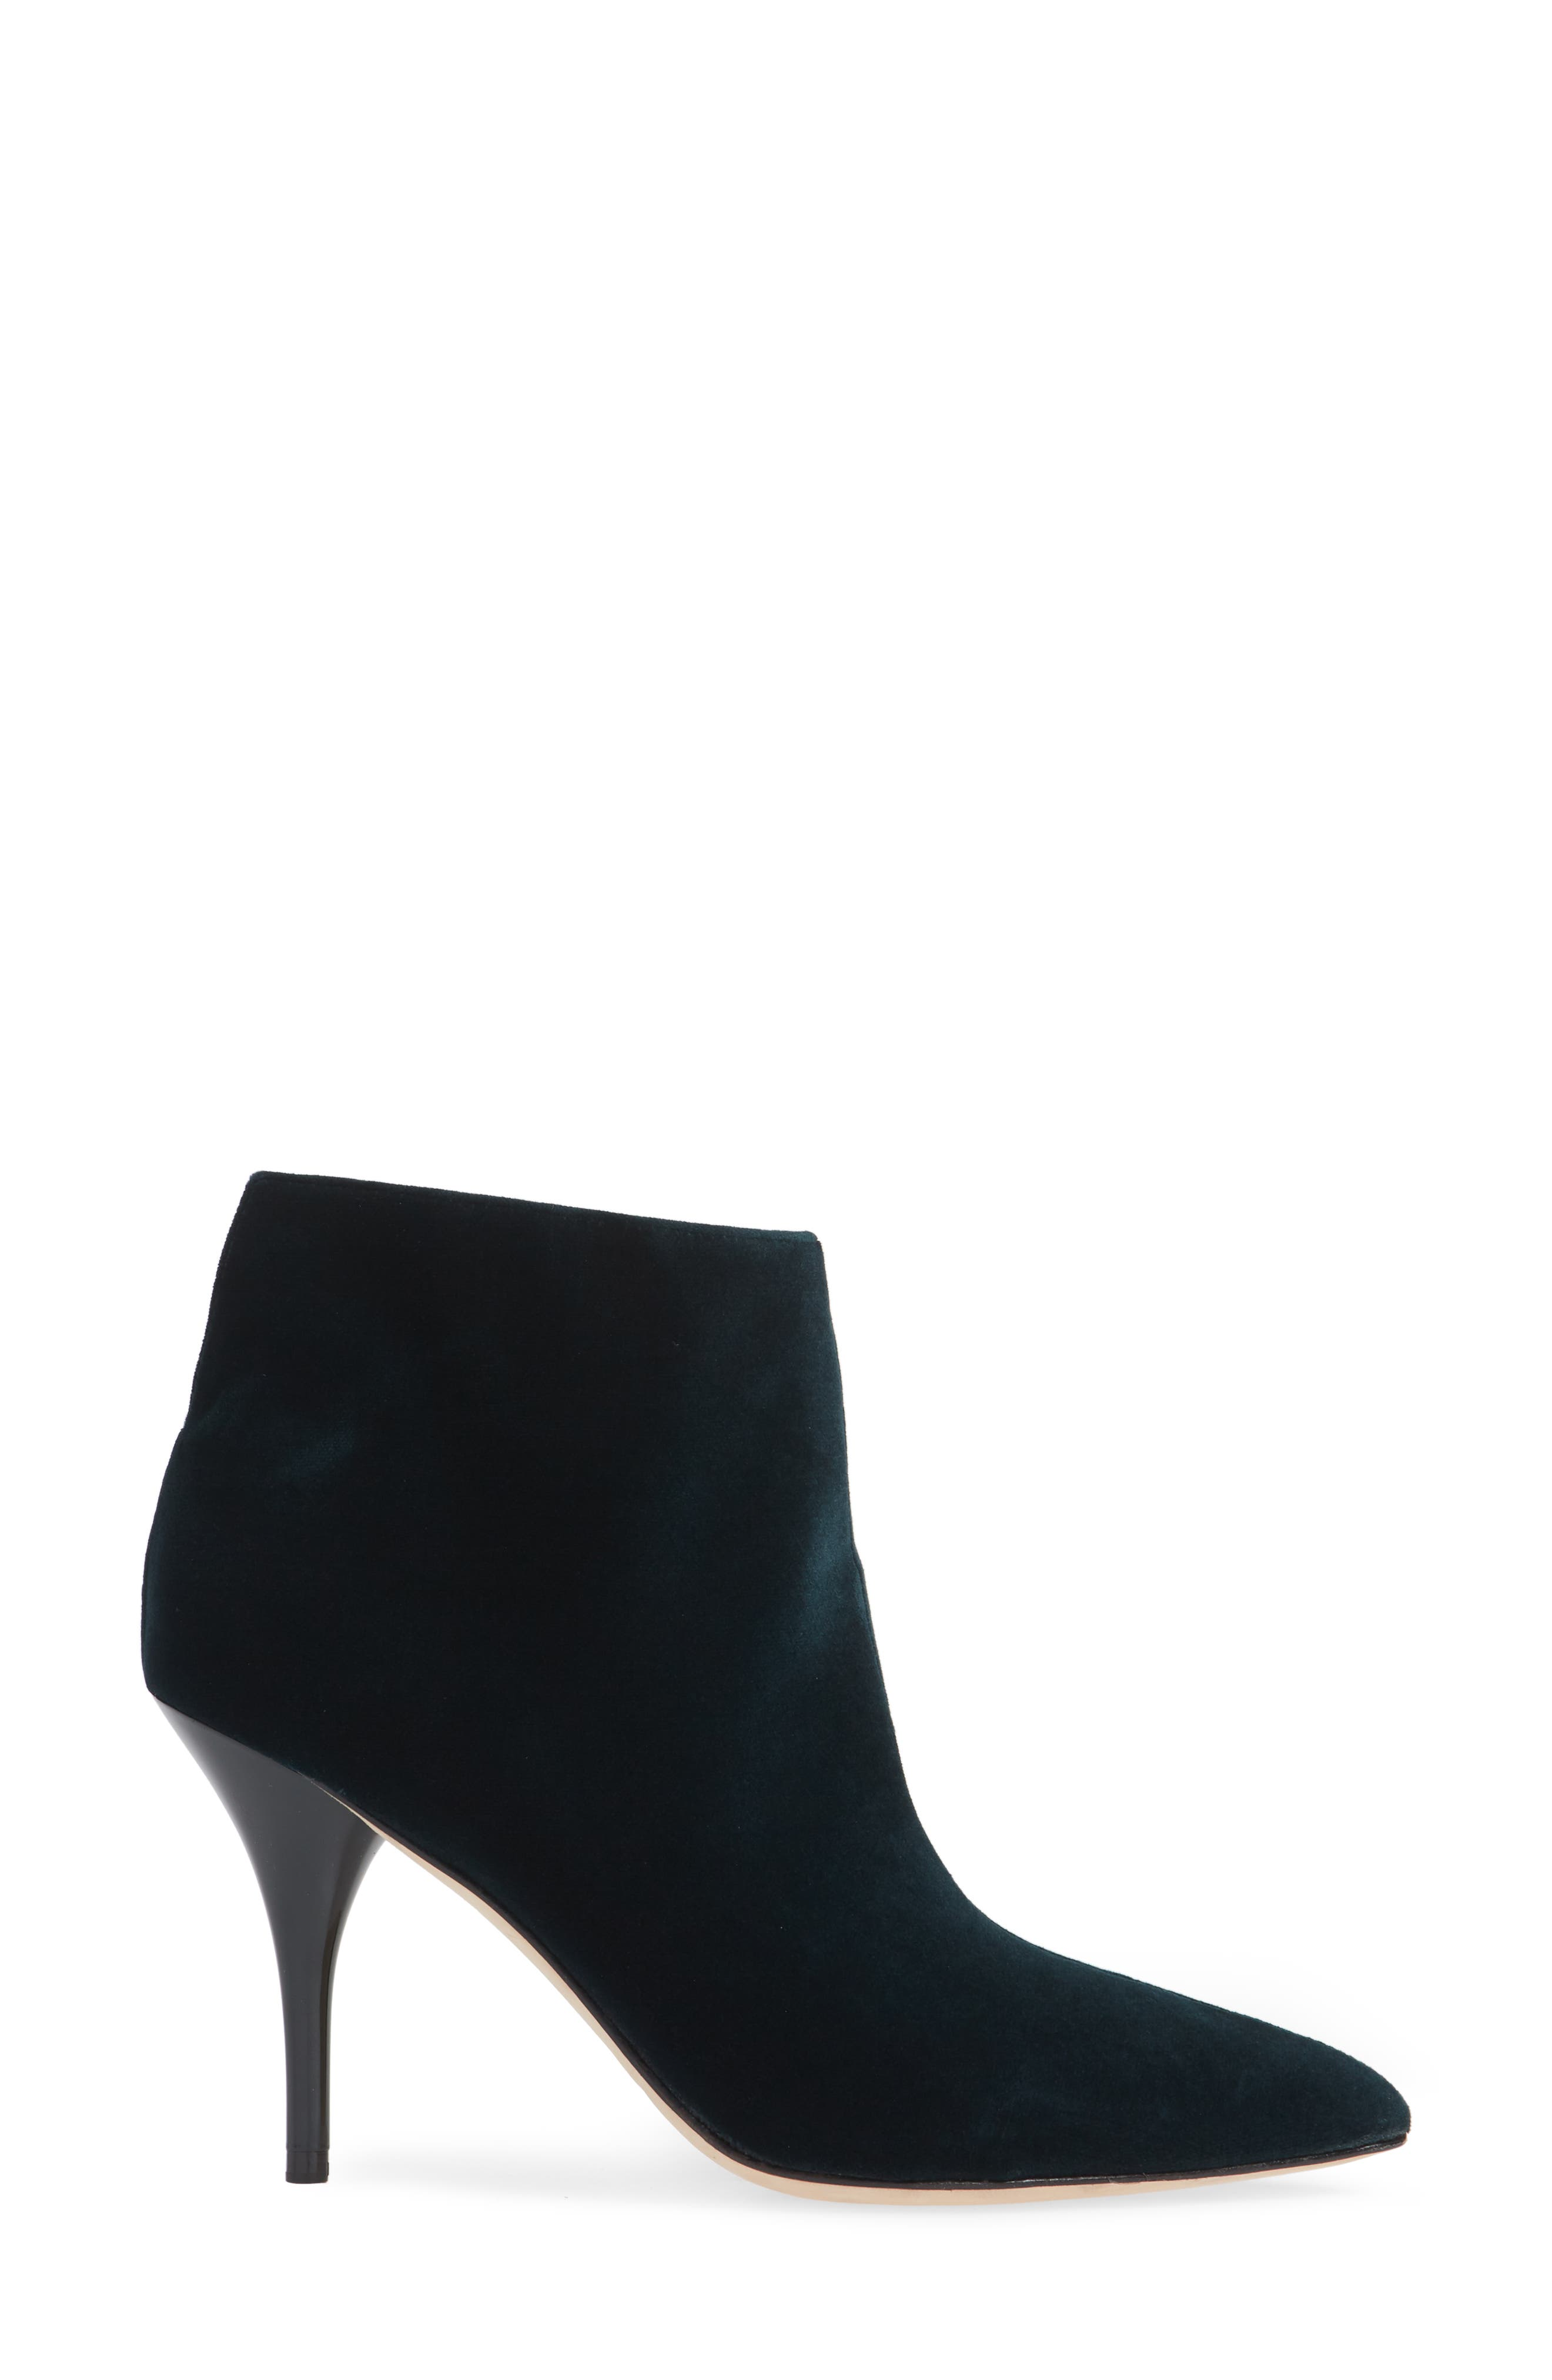 MARC FISHER LTD,                             Fenet Pointy Toe Bootie,                             Alternate thumbnail 3, color,                             SPRUCE FABRIC